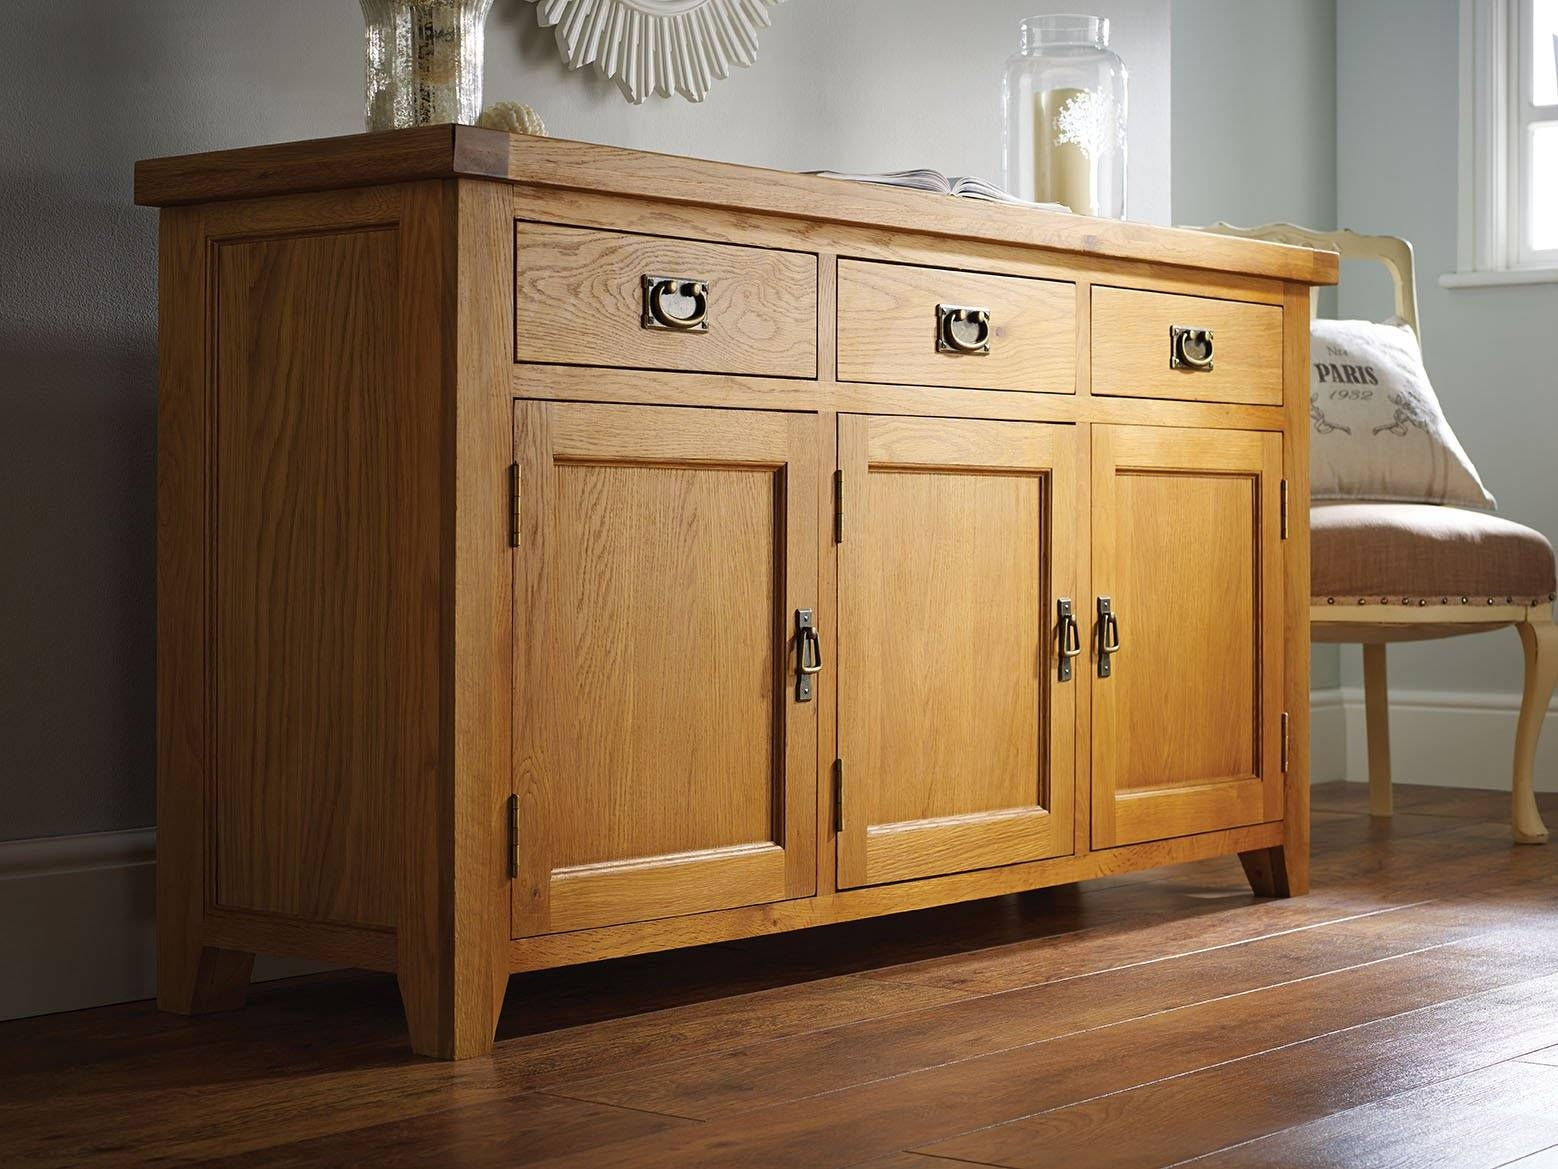 Farmhouse Country Oak Large Oak Sideboard – Just £399 – Youtube Intended For Country Sideboards (View 5 of 20)